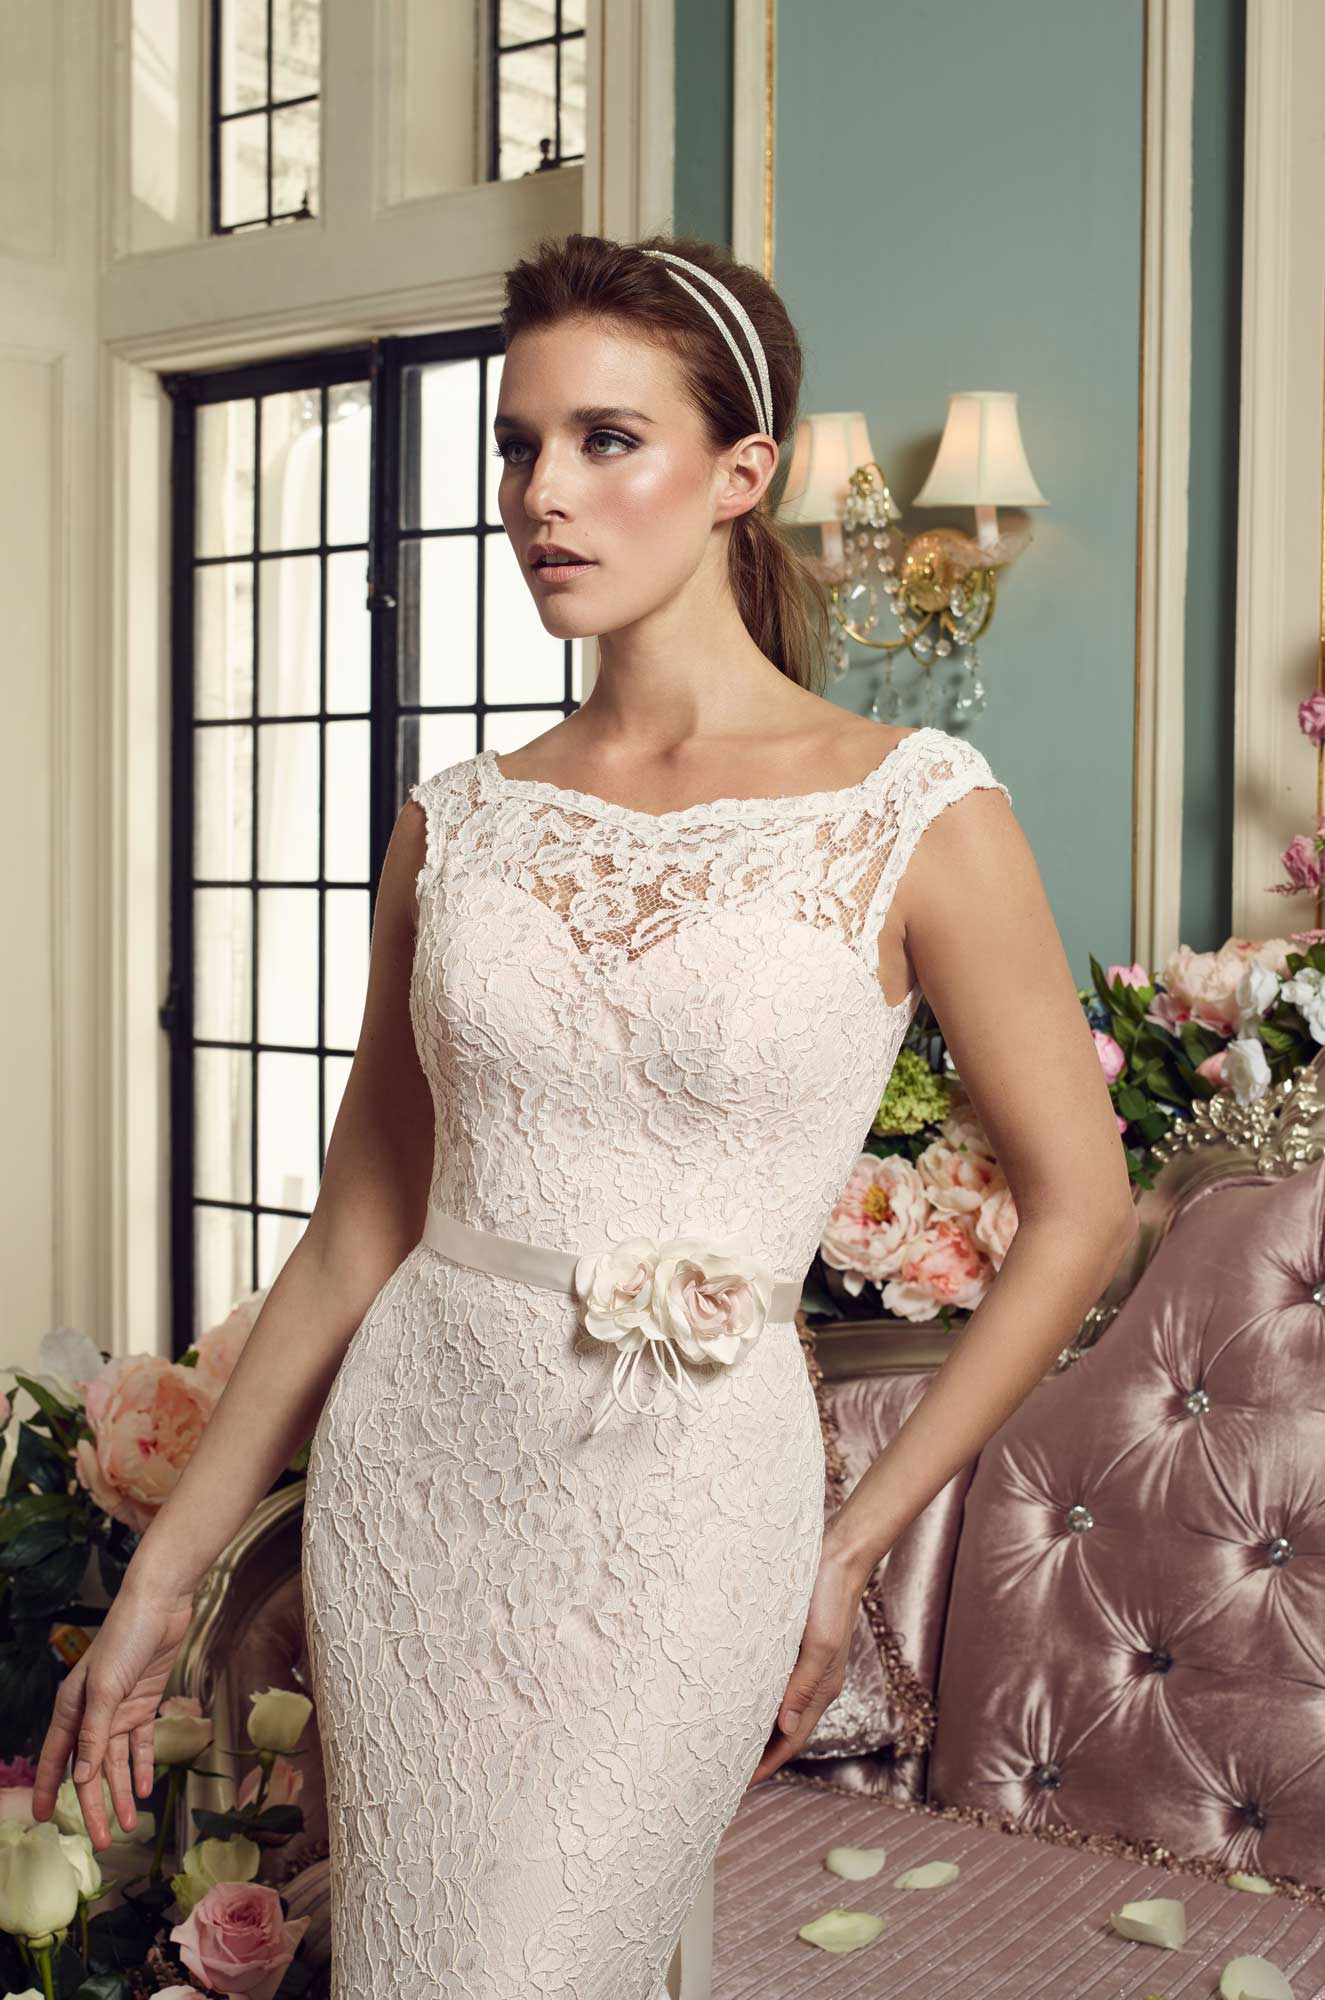 Floral Accent Wedding Dress - Style #2157 | Mikaella Bridal